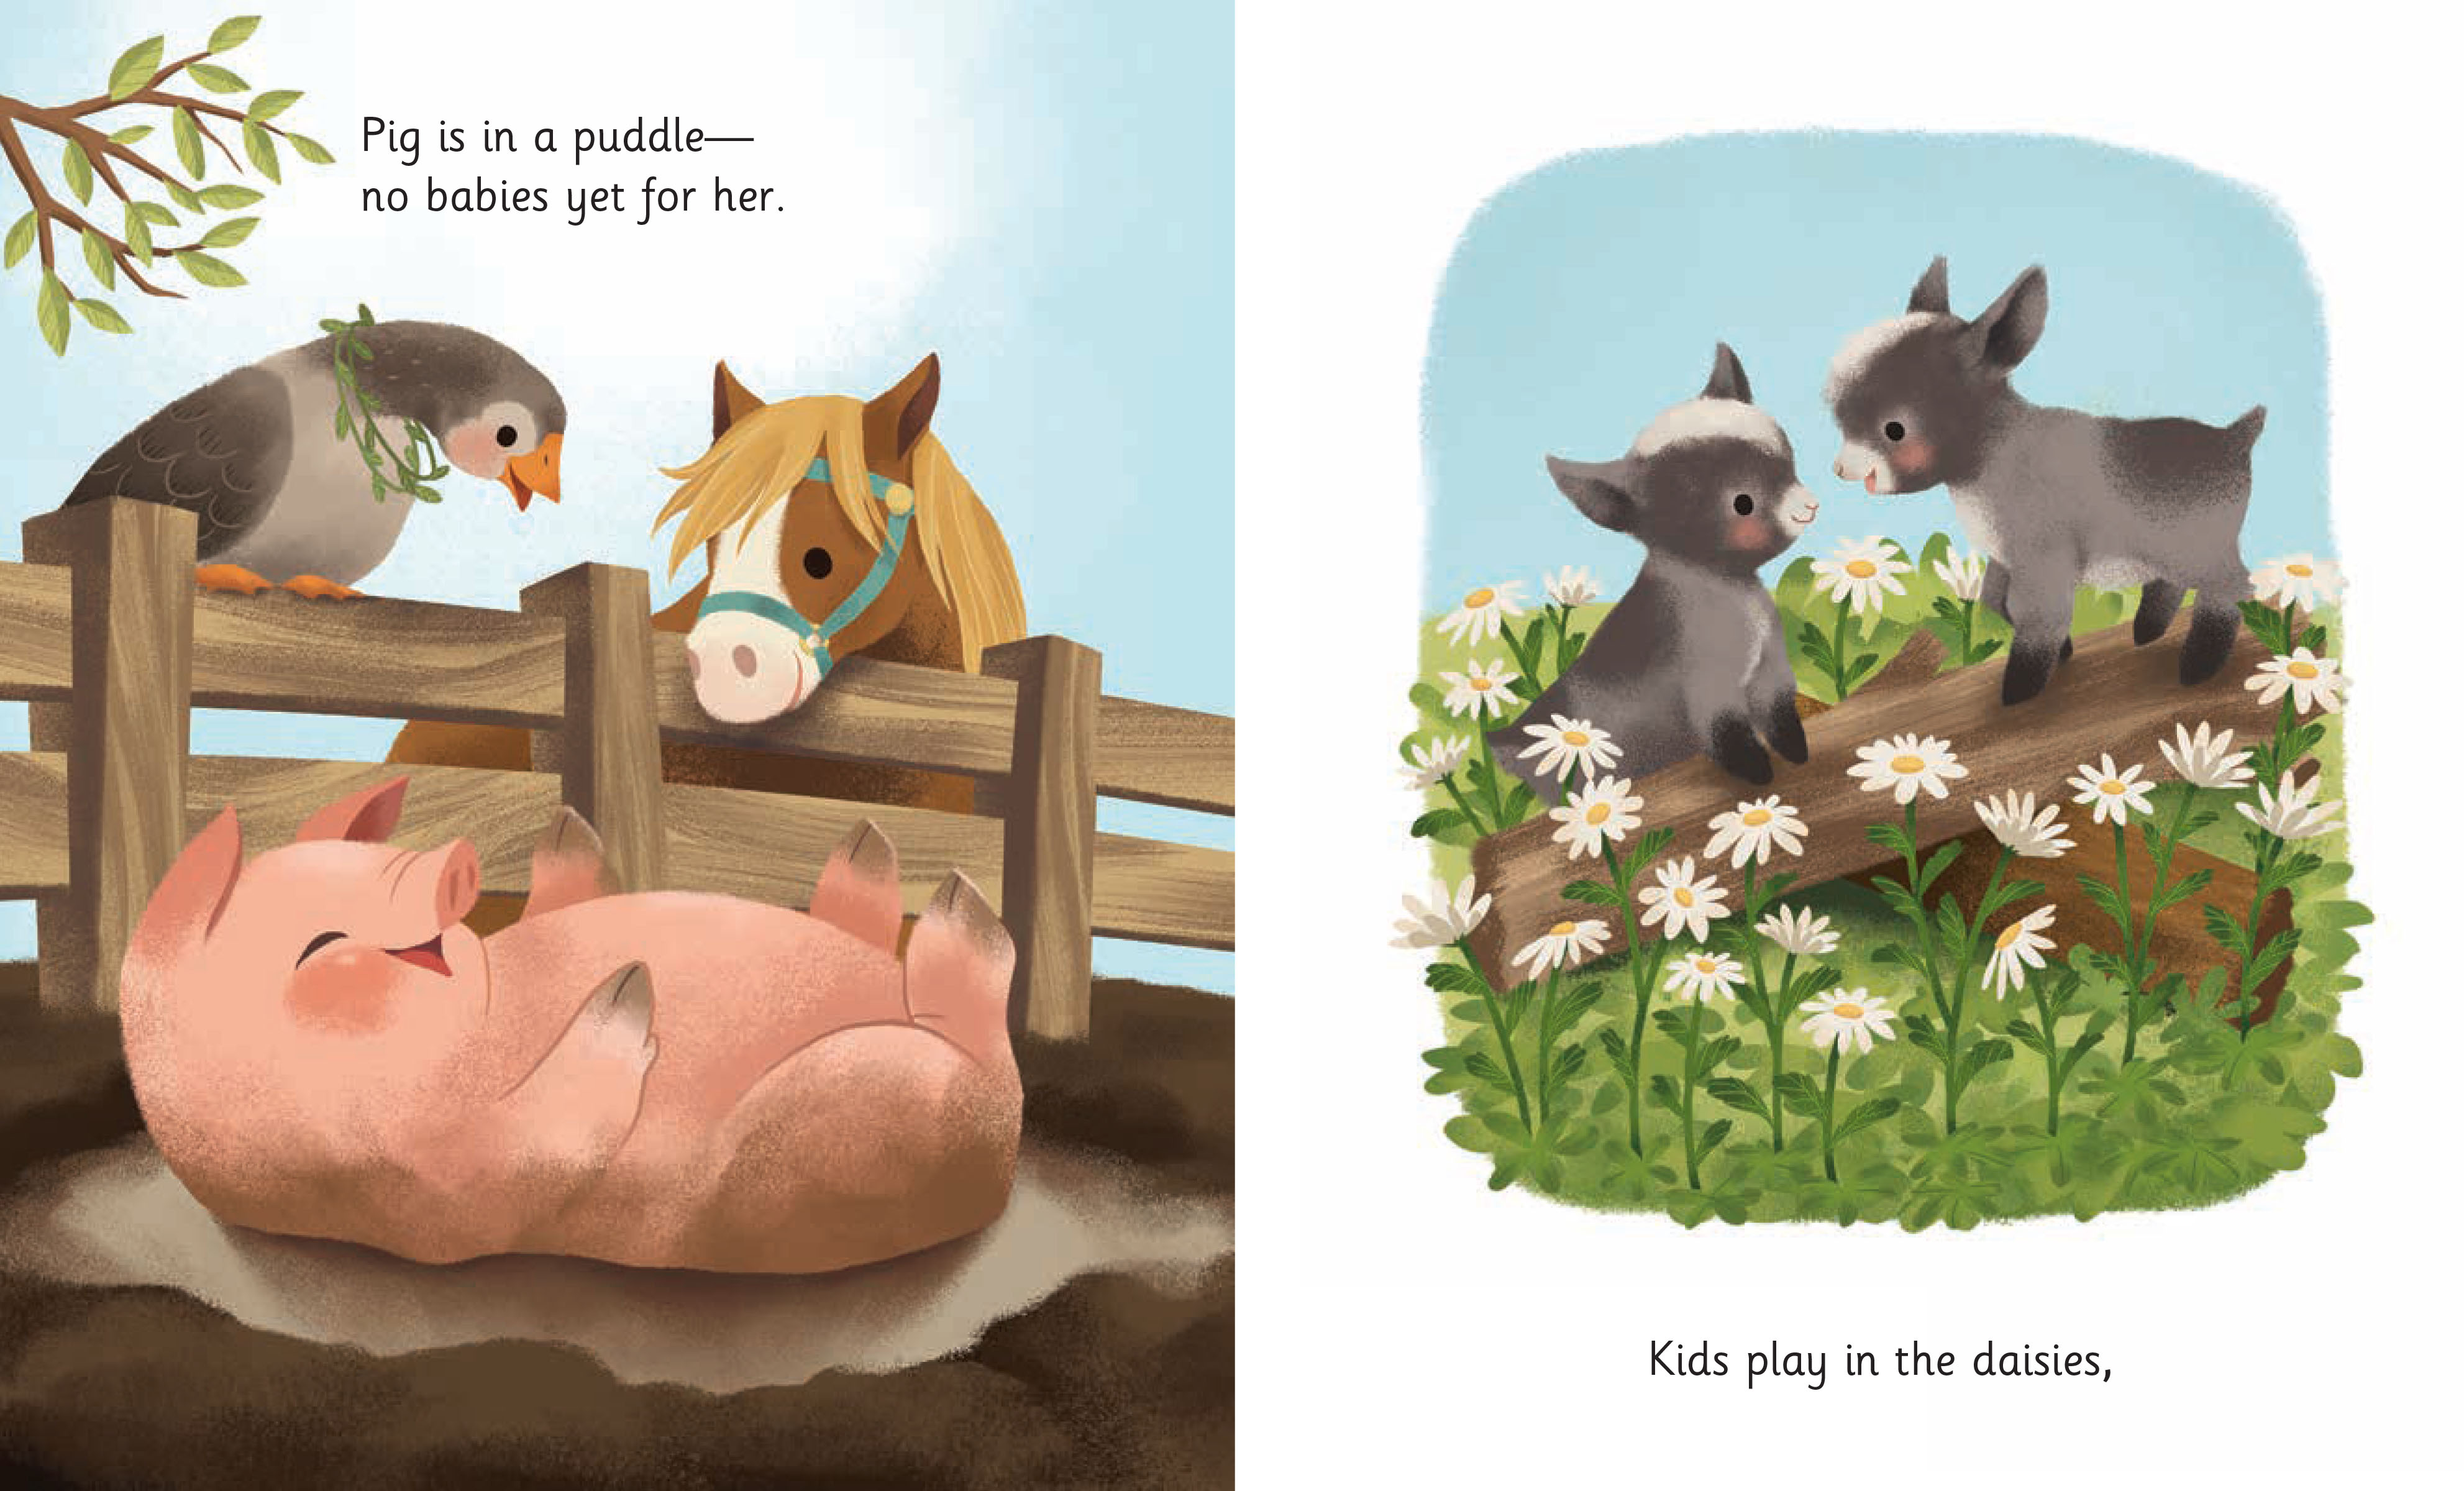 springtime babies. pig is in a puddle